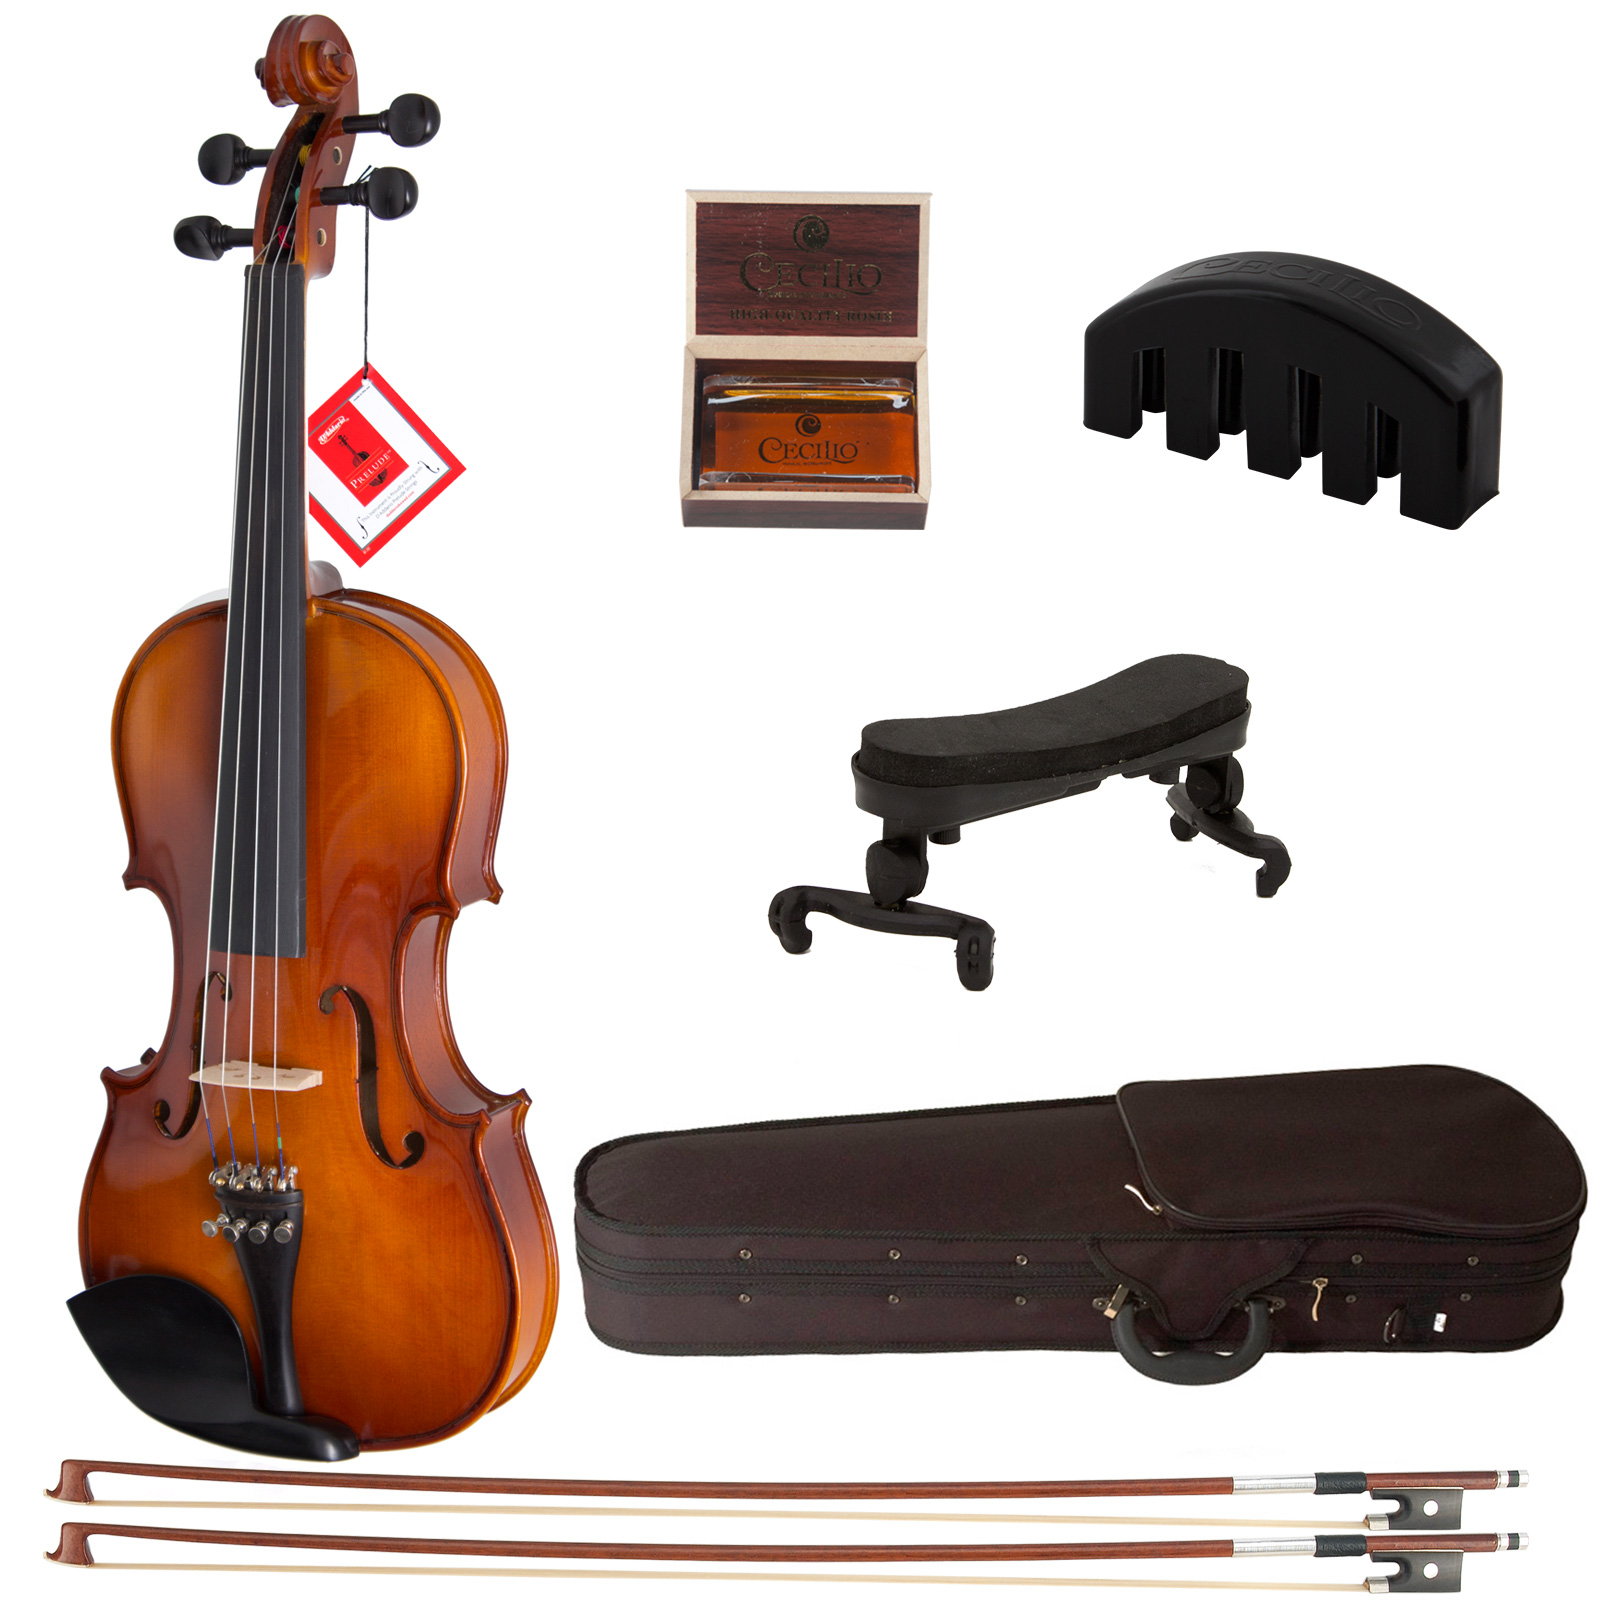 Cecilio Size 3/4 CVN-300 Ebony Fitted Solid Wood Violin w/ D'Addario Prelude Strings, Violin Mute, Shoulder Rest and More